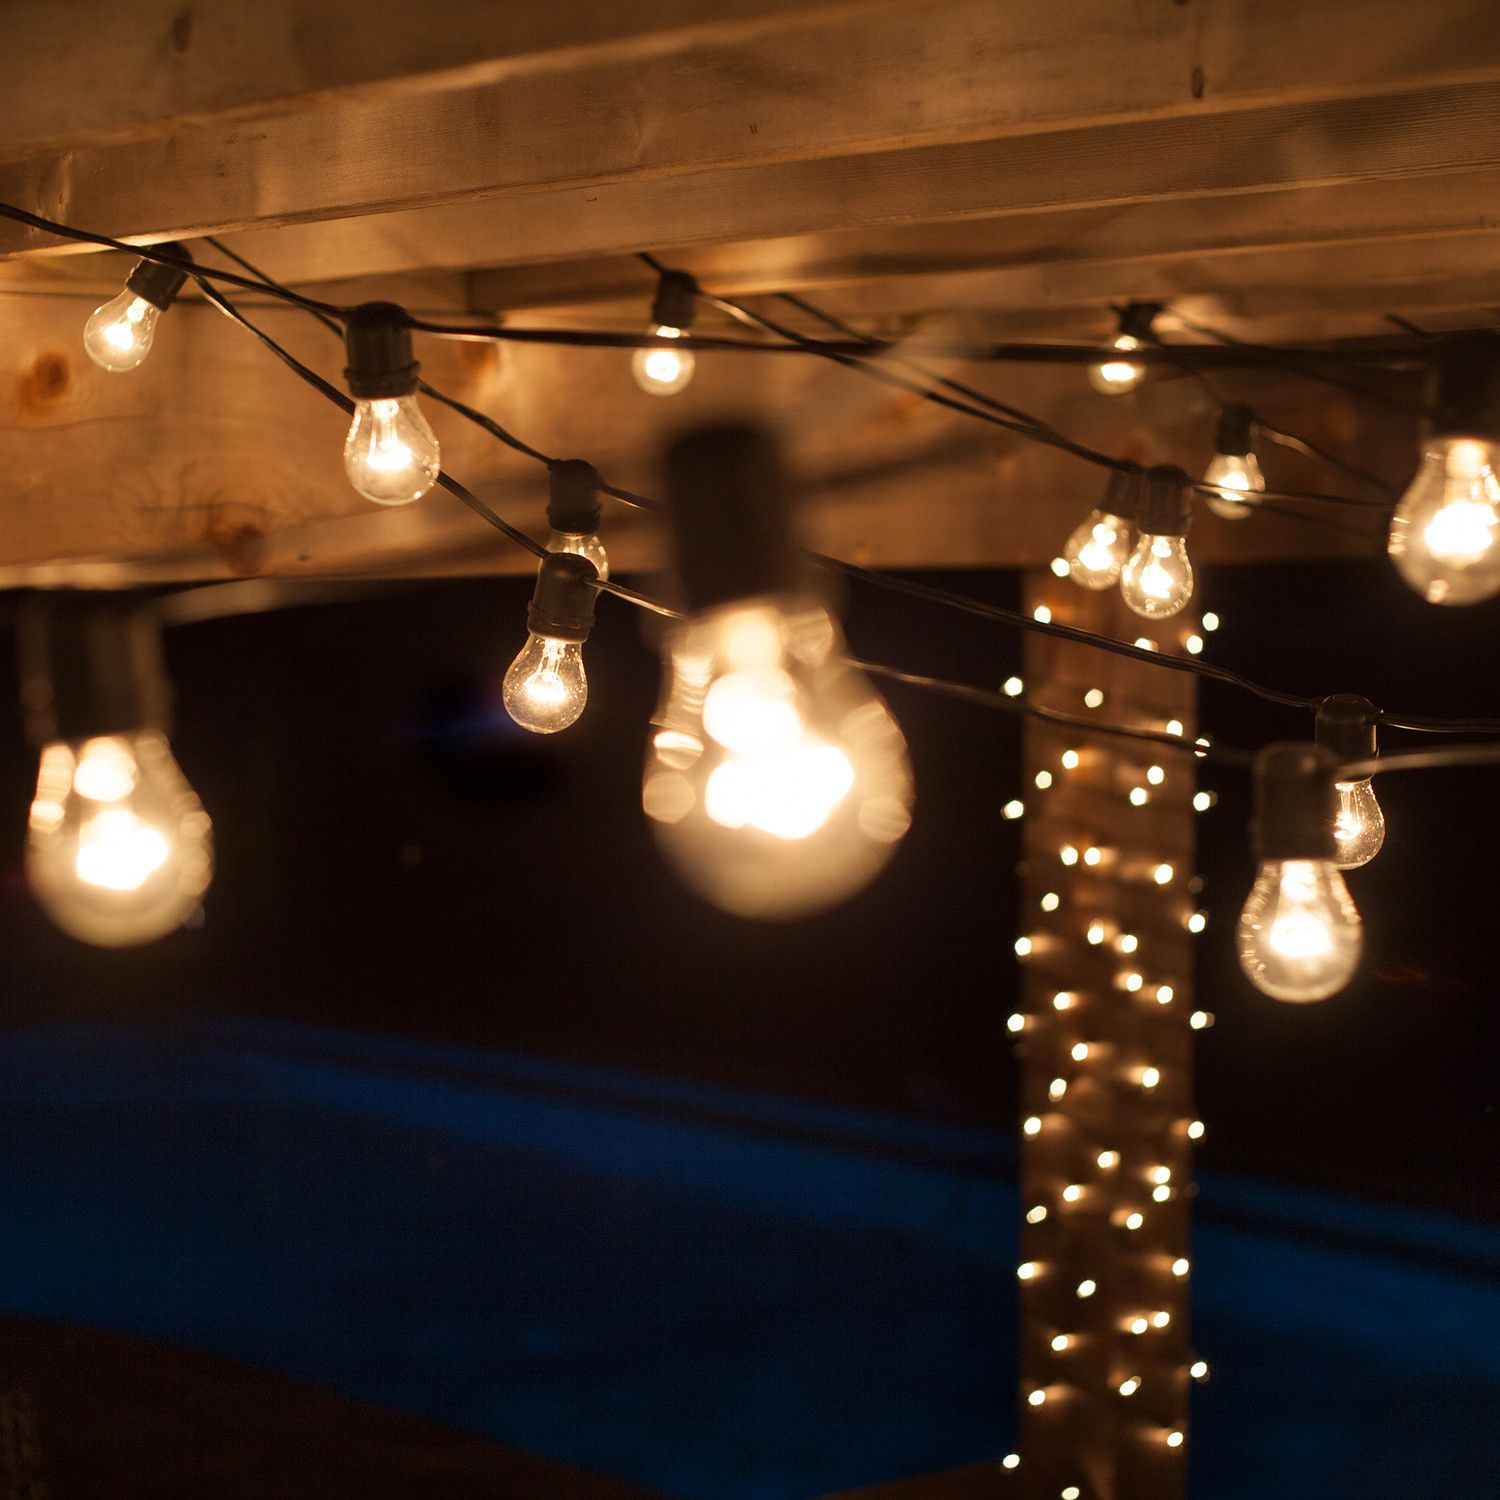 17 Best images about Cool Ideas for lighting!! on Pinterest | Led christmas  lights, Light string and Spoon mirror